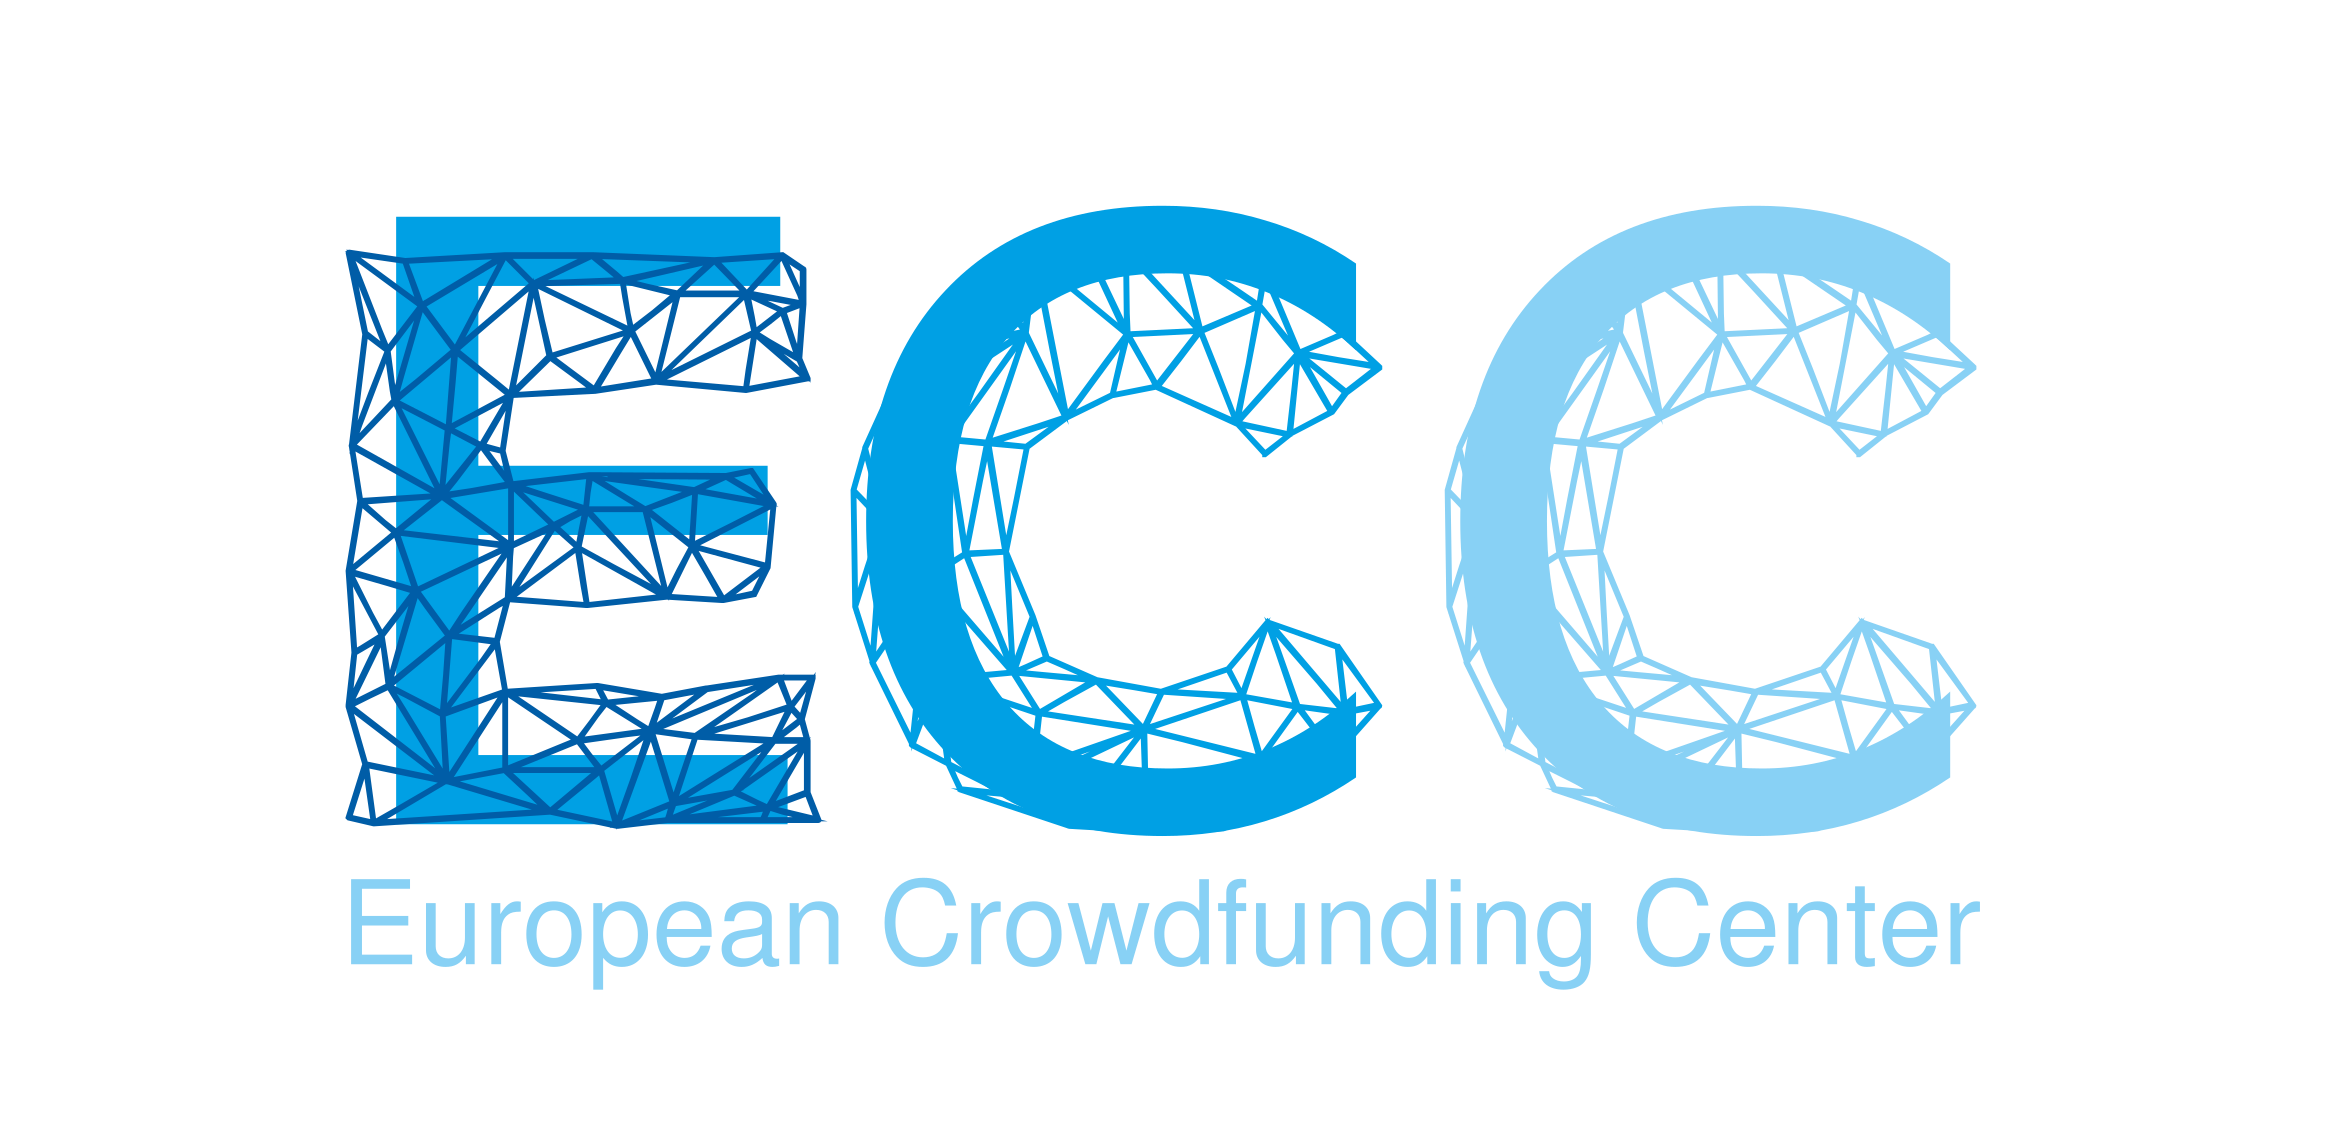 European Crowdfunding Center